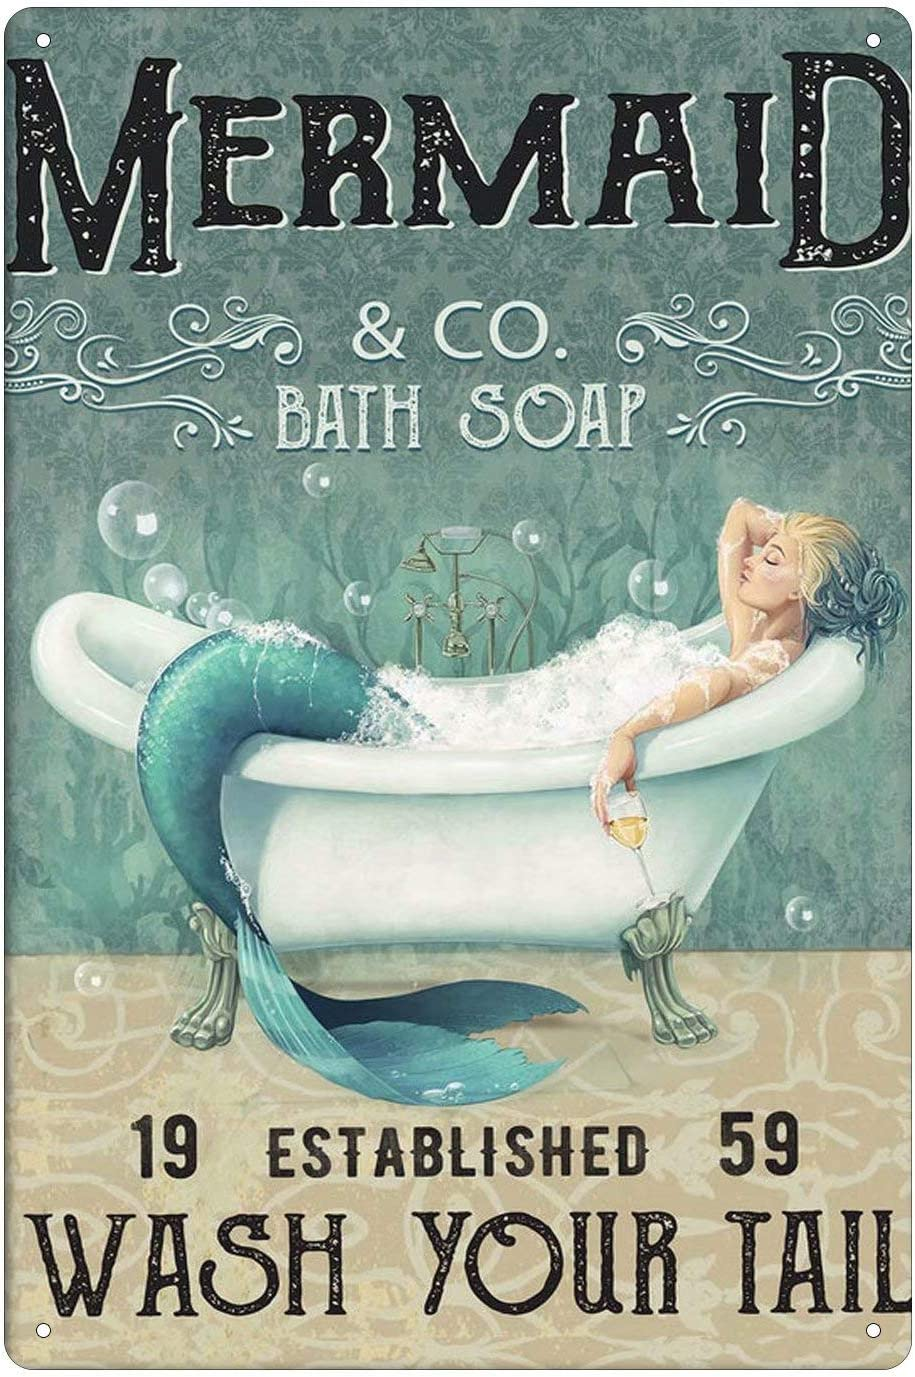 Mermaid Funny Tin Sign Bar Pub Diner Cafe Wall Decor Home Art Poster Retro Iron Poster Painting 8x12 inch